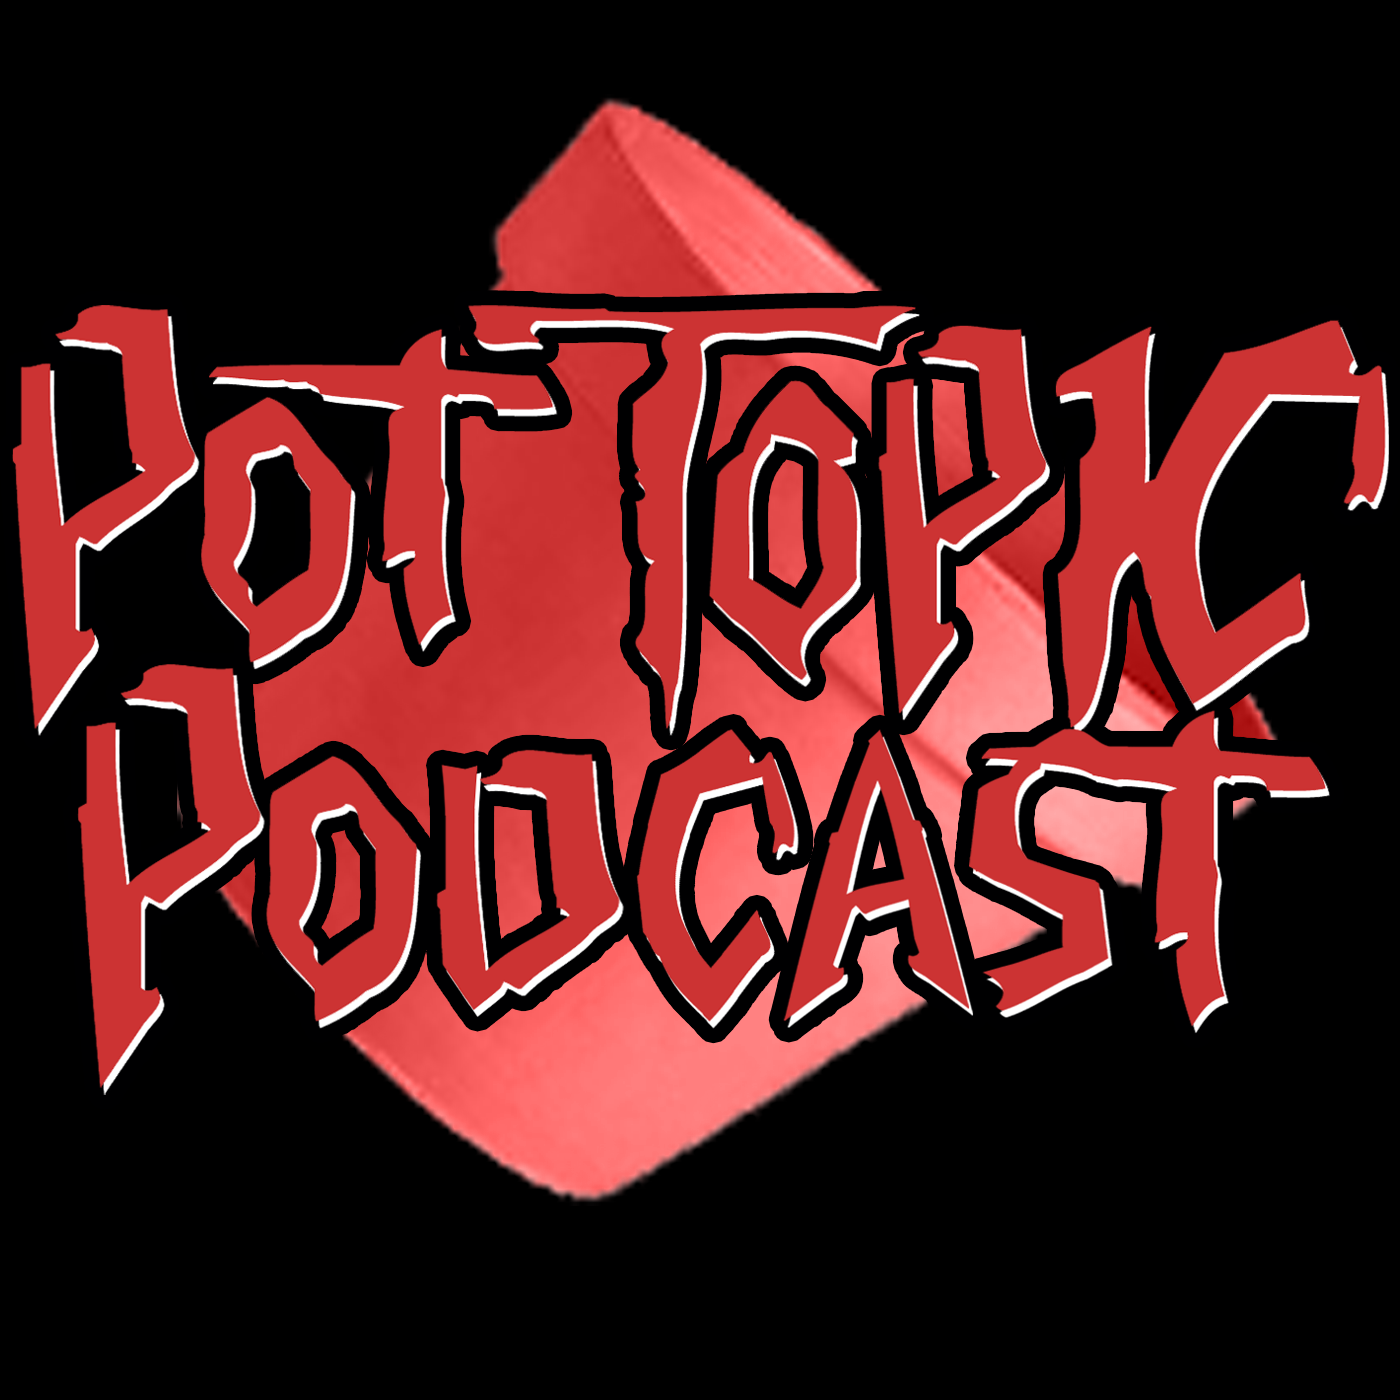 Pot Topic Podcast